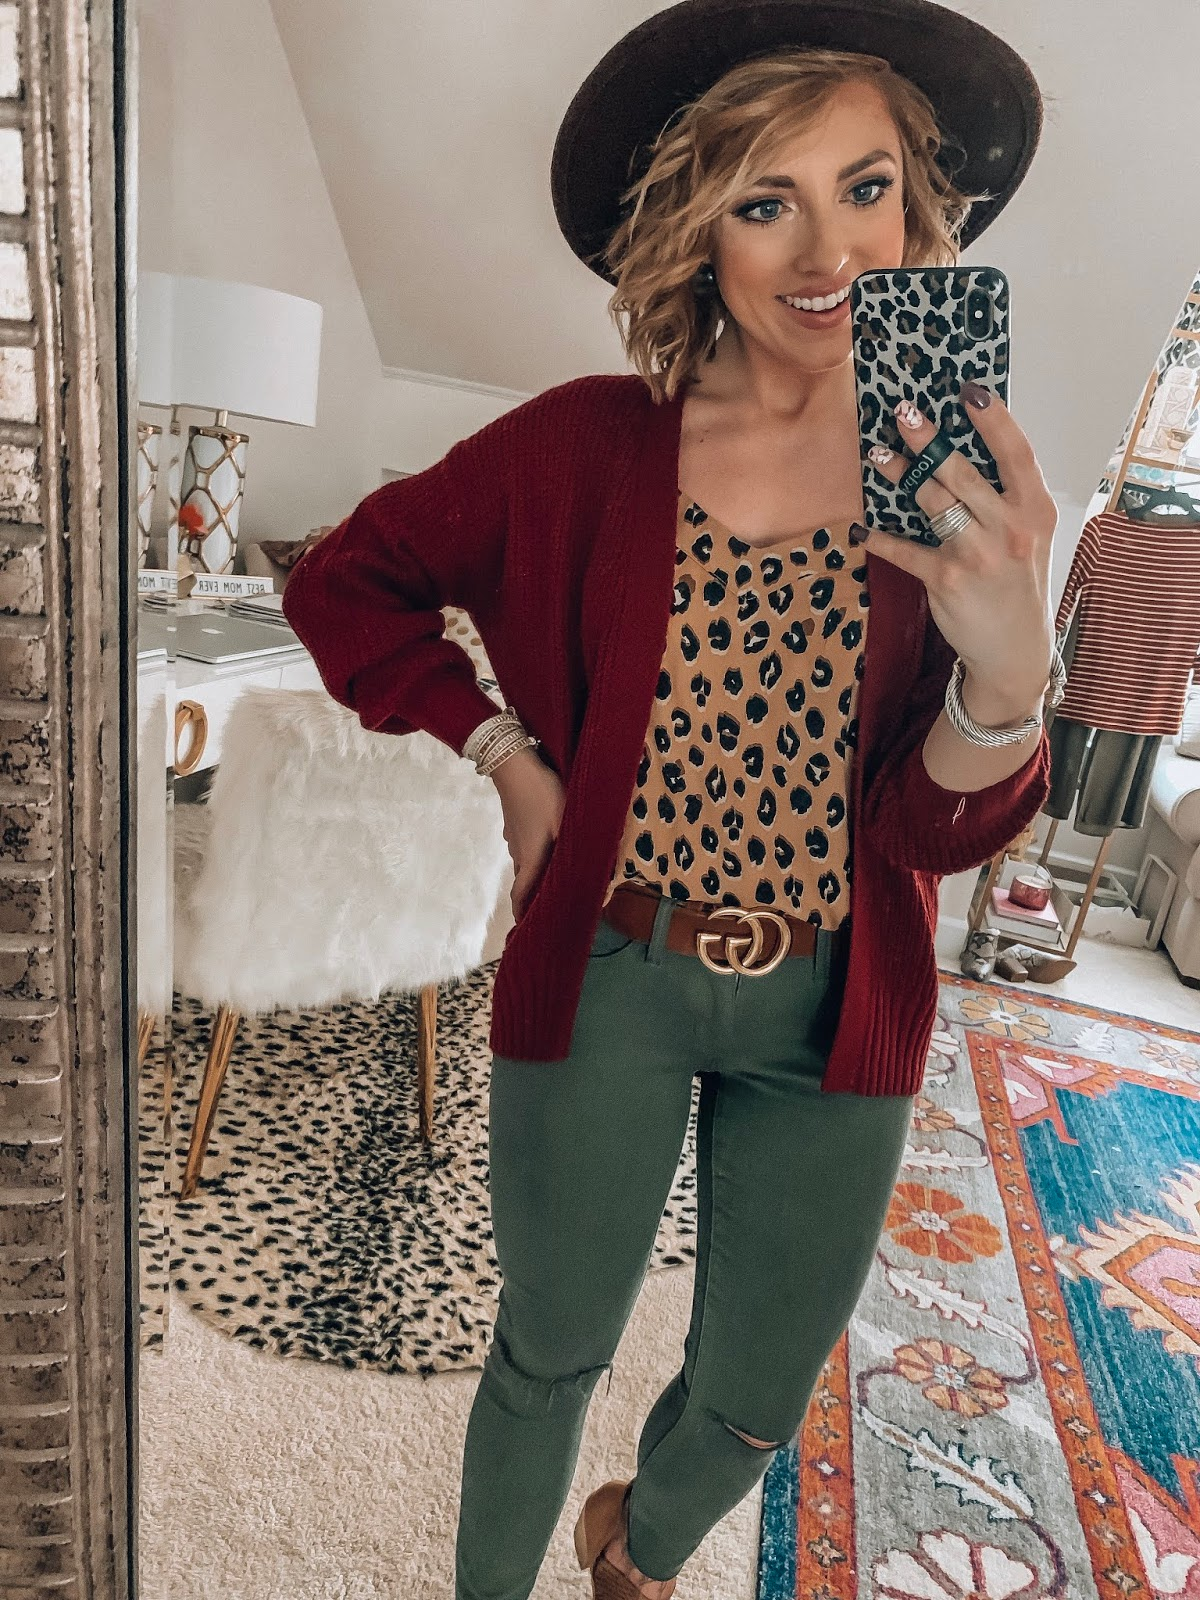 Target Fall Finds: Part Three - $20 Cardigan, Leopard Cami and Olive Green Jeggings - Something Delightful Blog #FallStyle #TargetStye